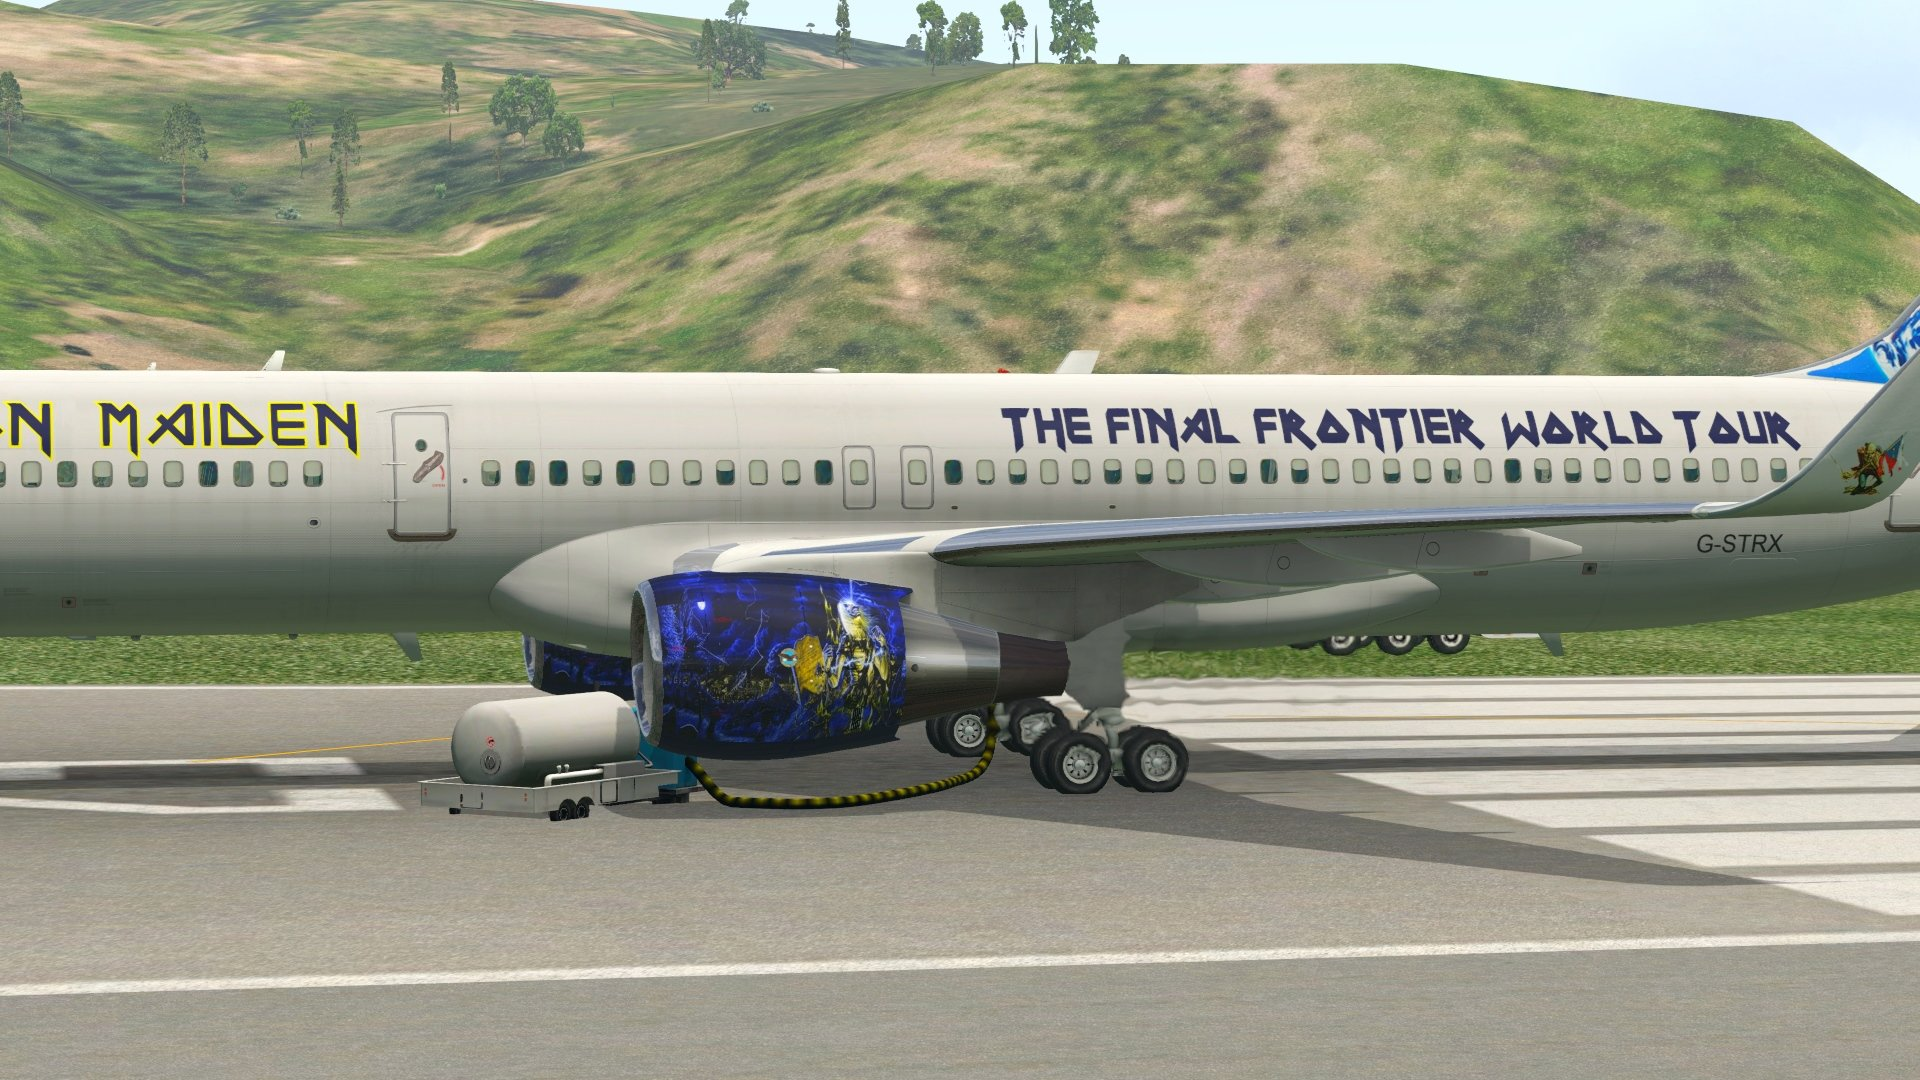 757 Version 2 G-STRX Iron Maiden Livery - Liveries - Threshold